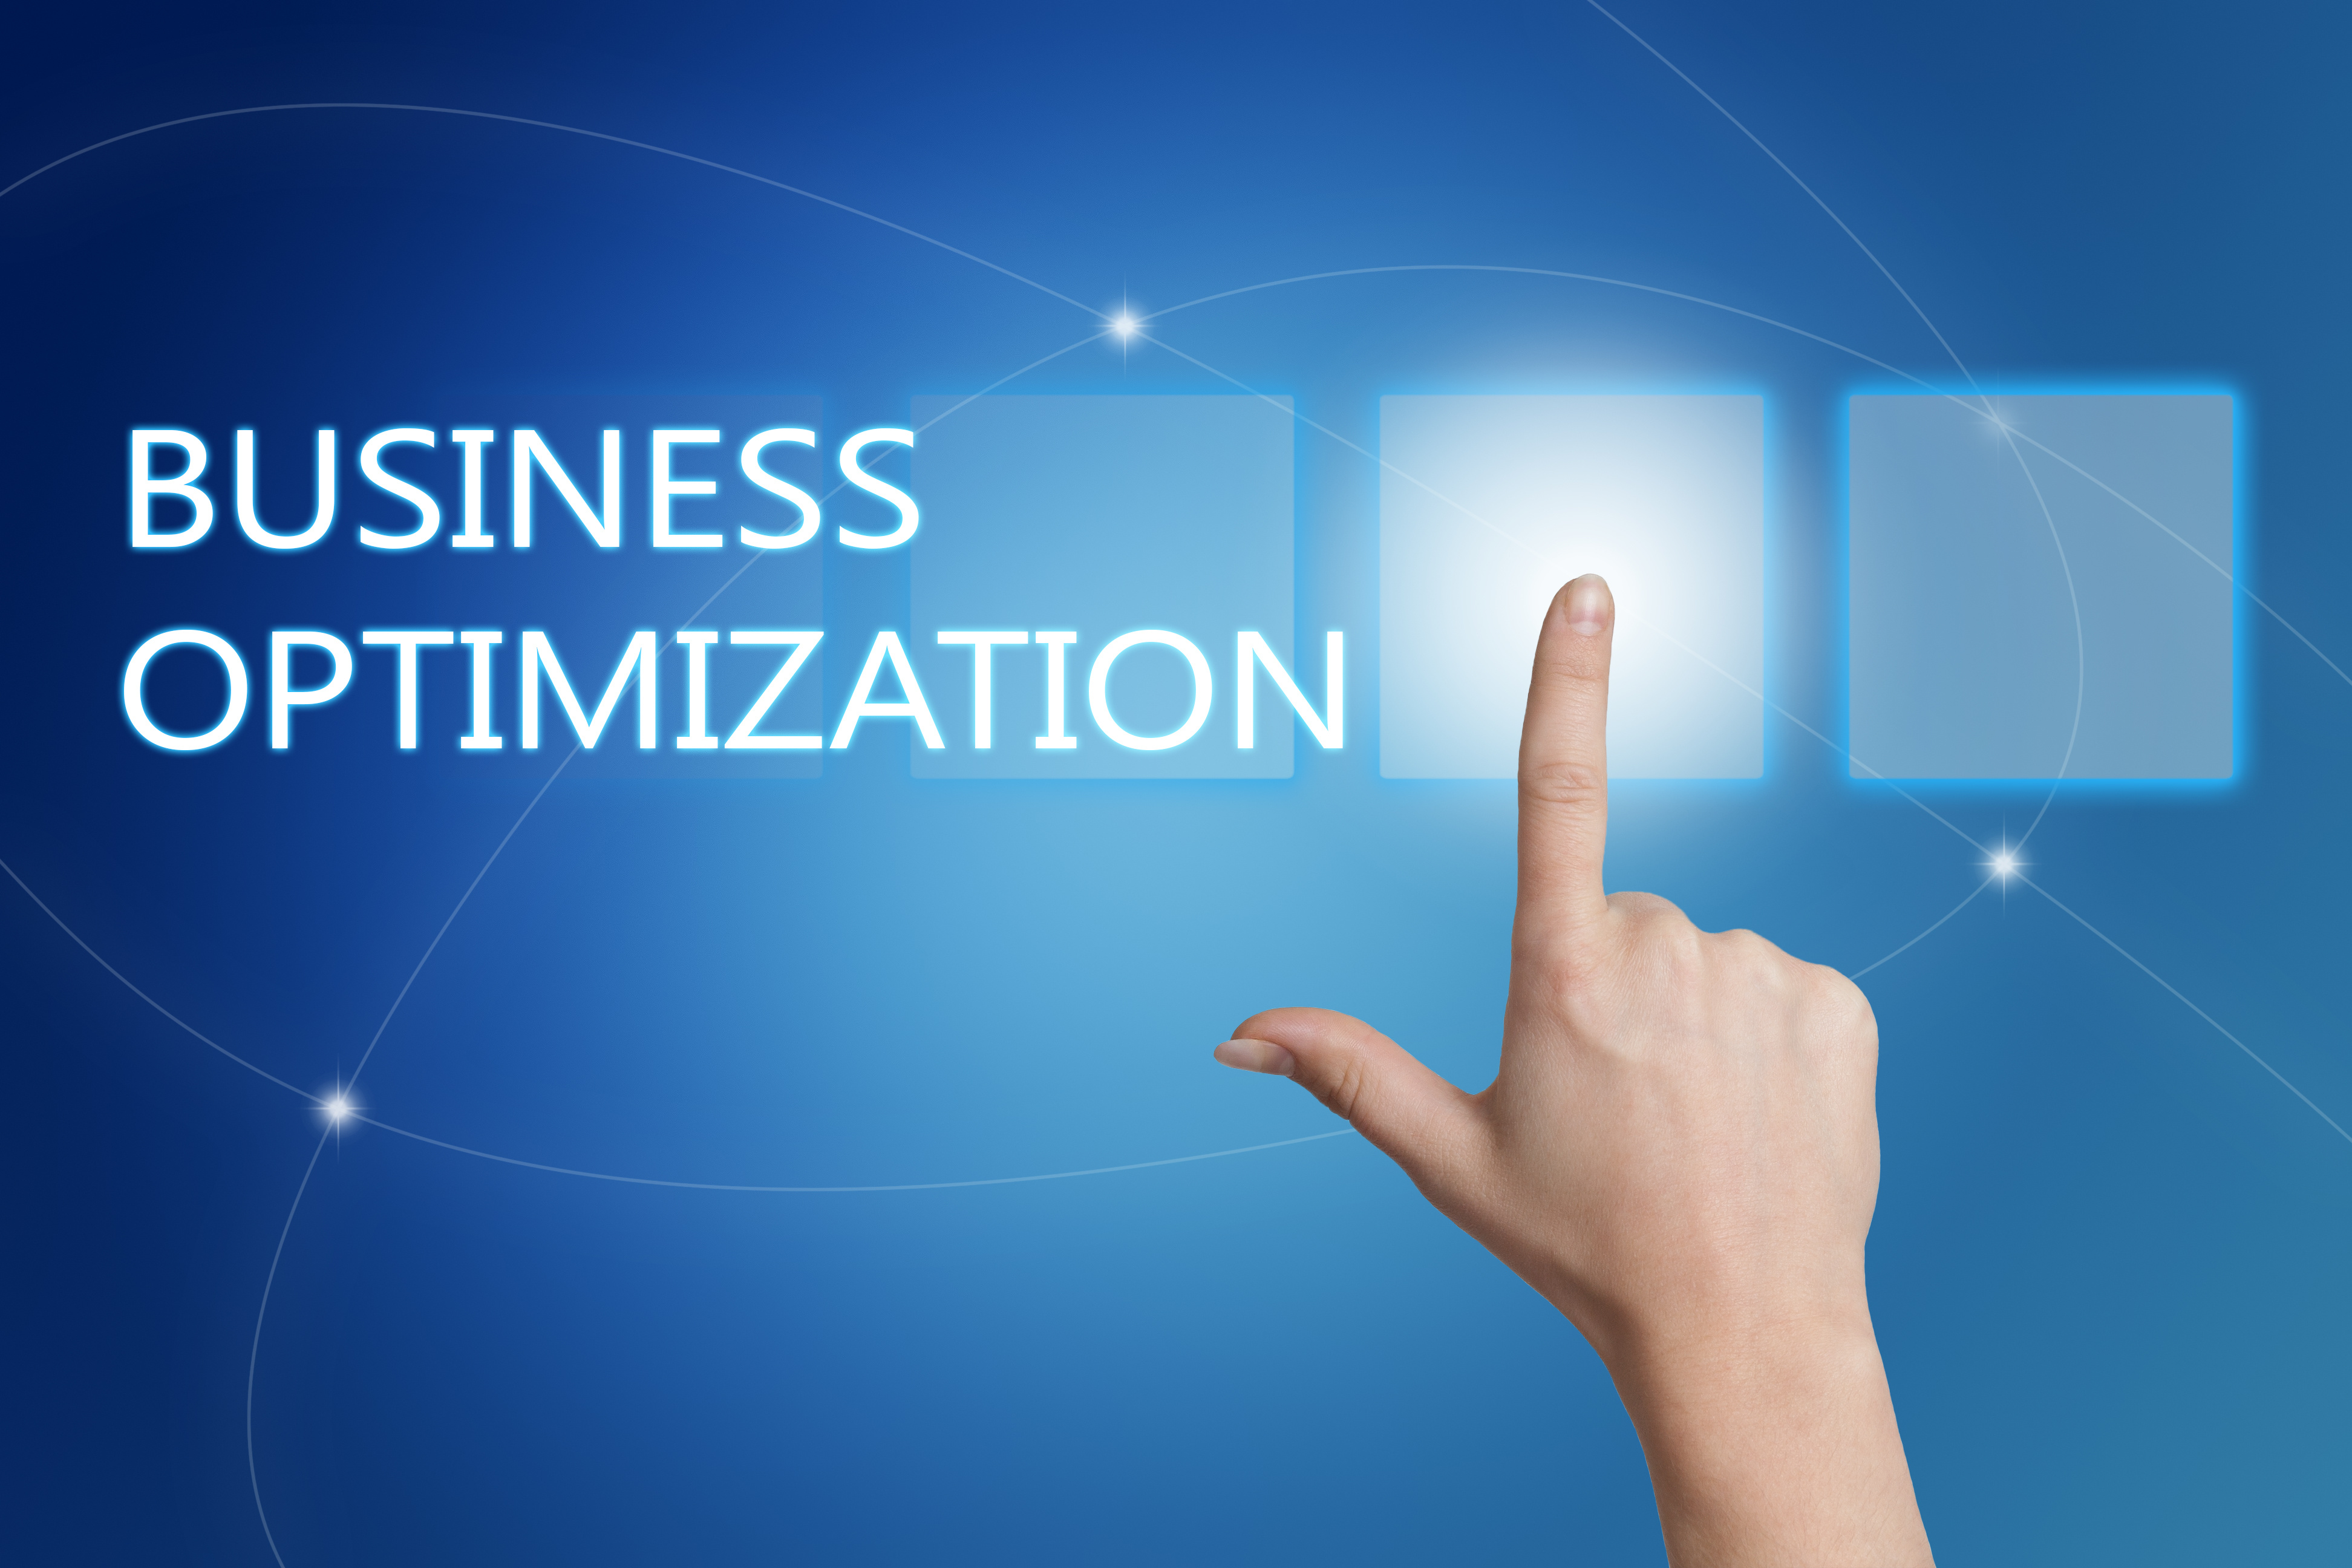 business optimization software for small business